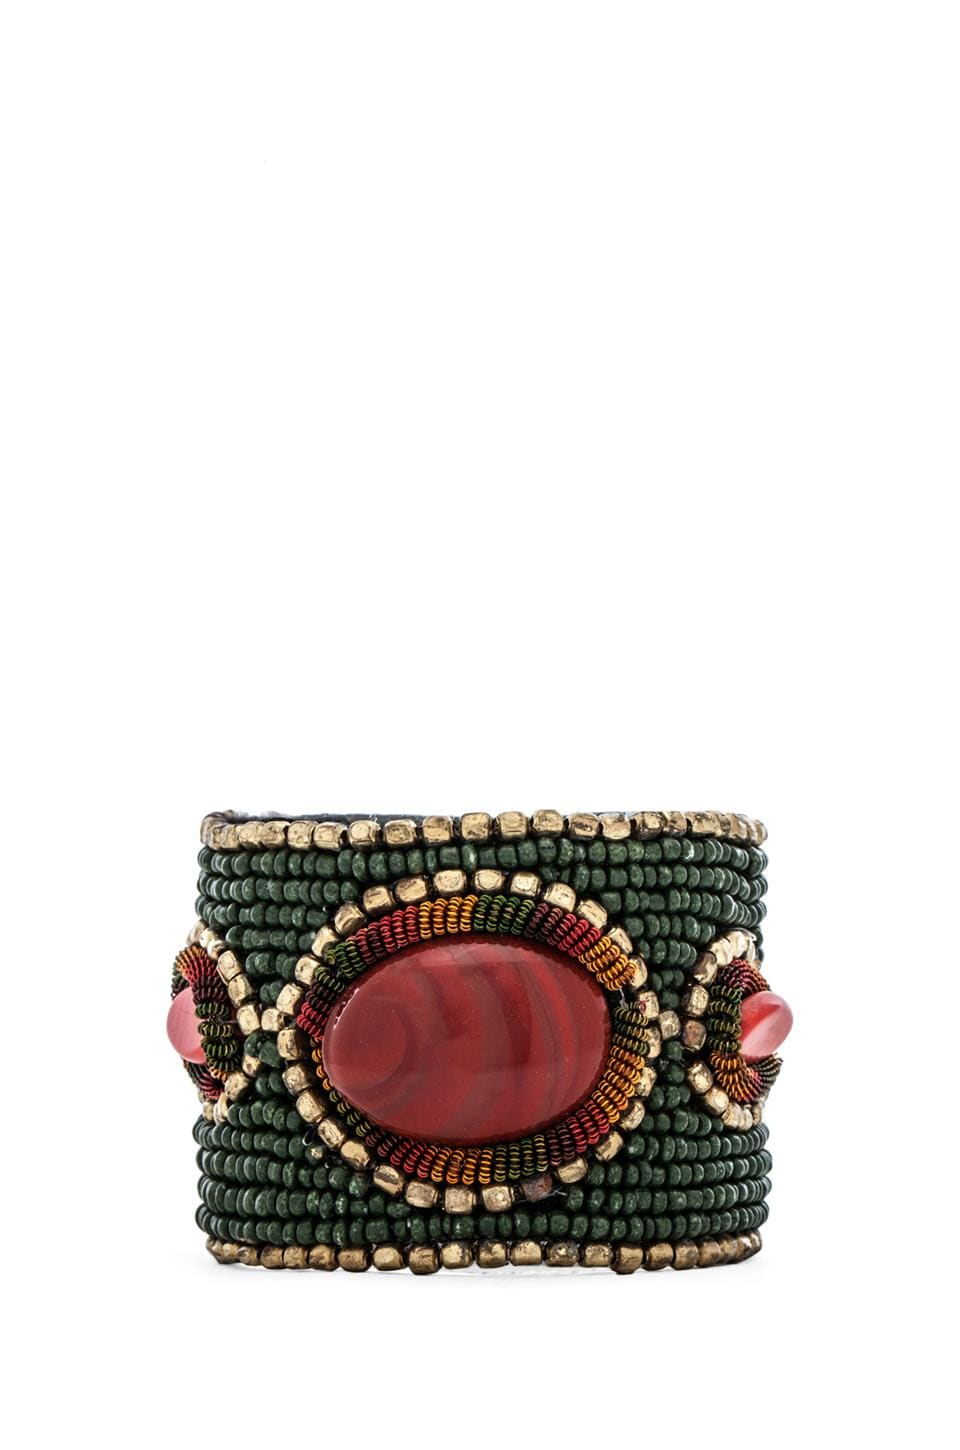 Raga Stone Beaded Bracelet in Teal